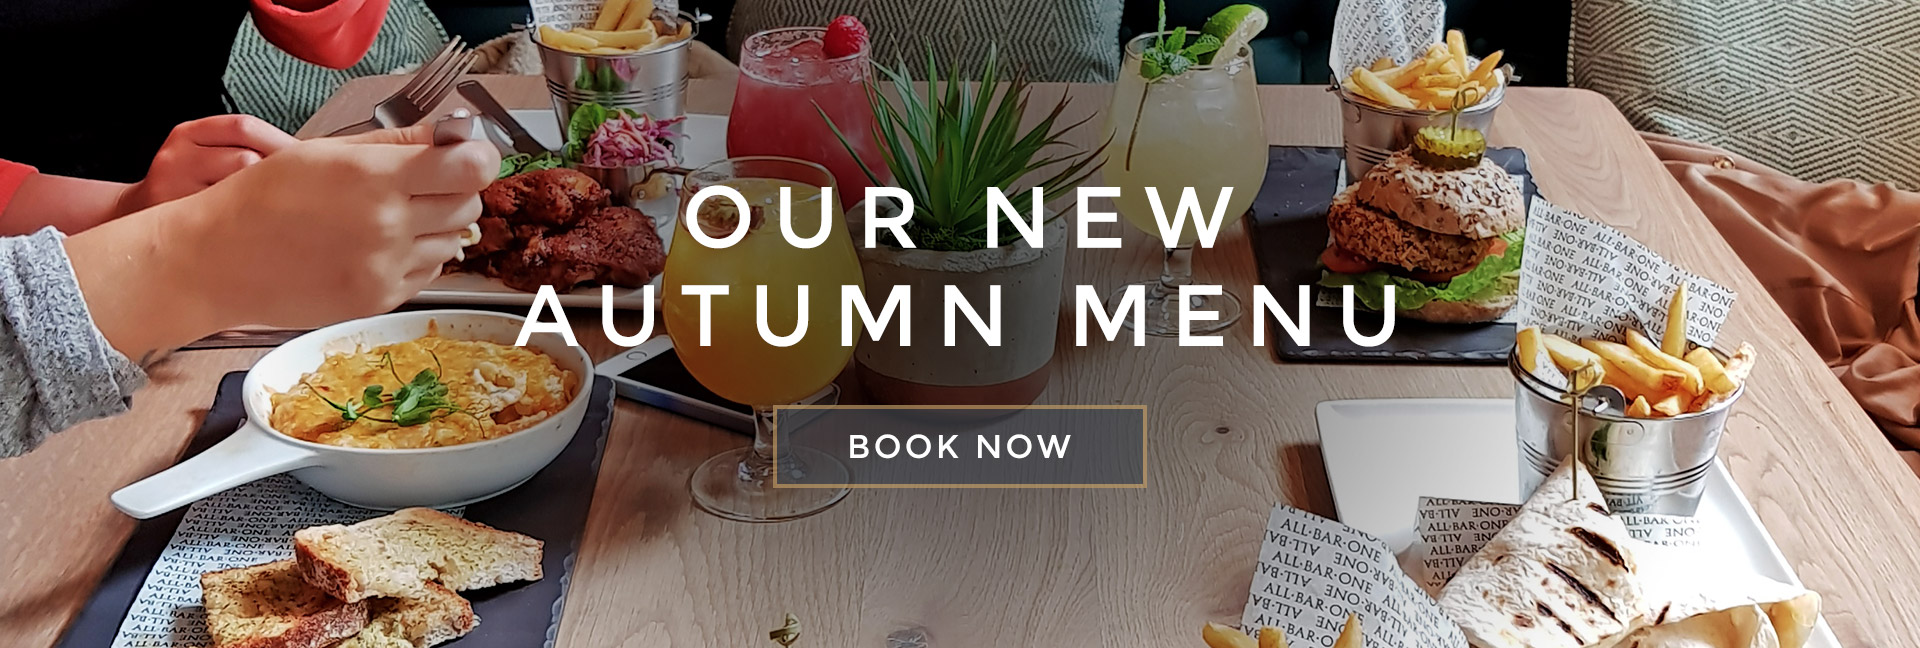 Our new Autumn menu at All Bar One Brighton - Book now